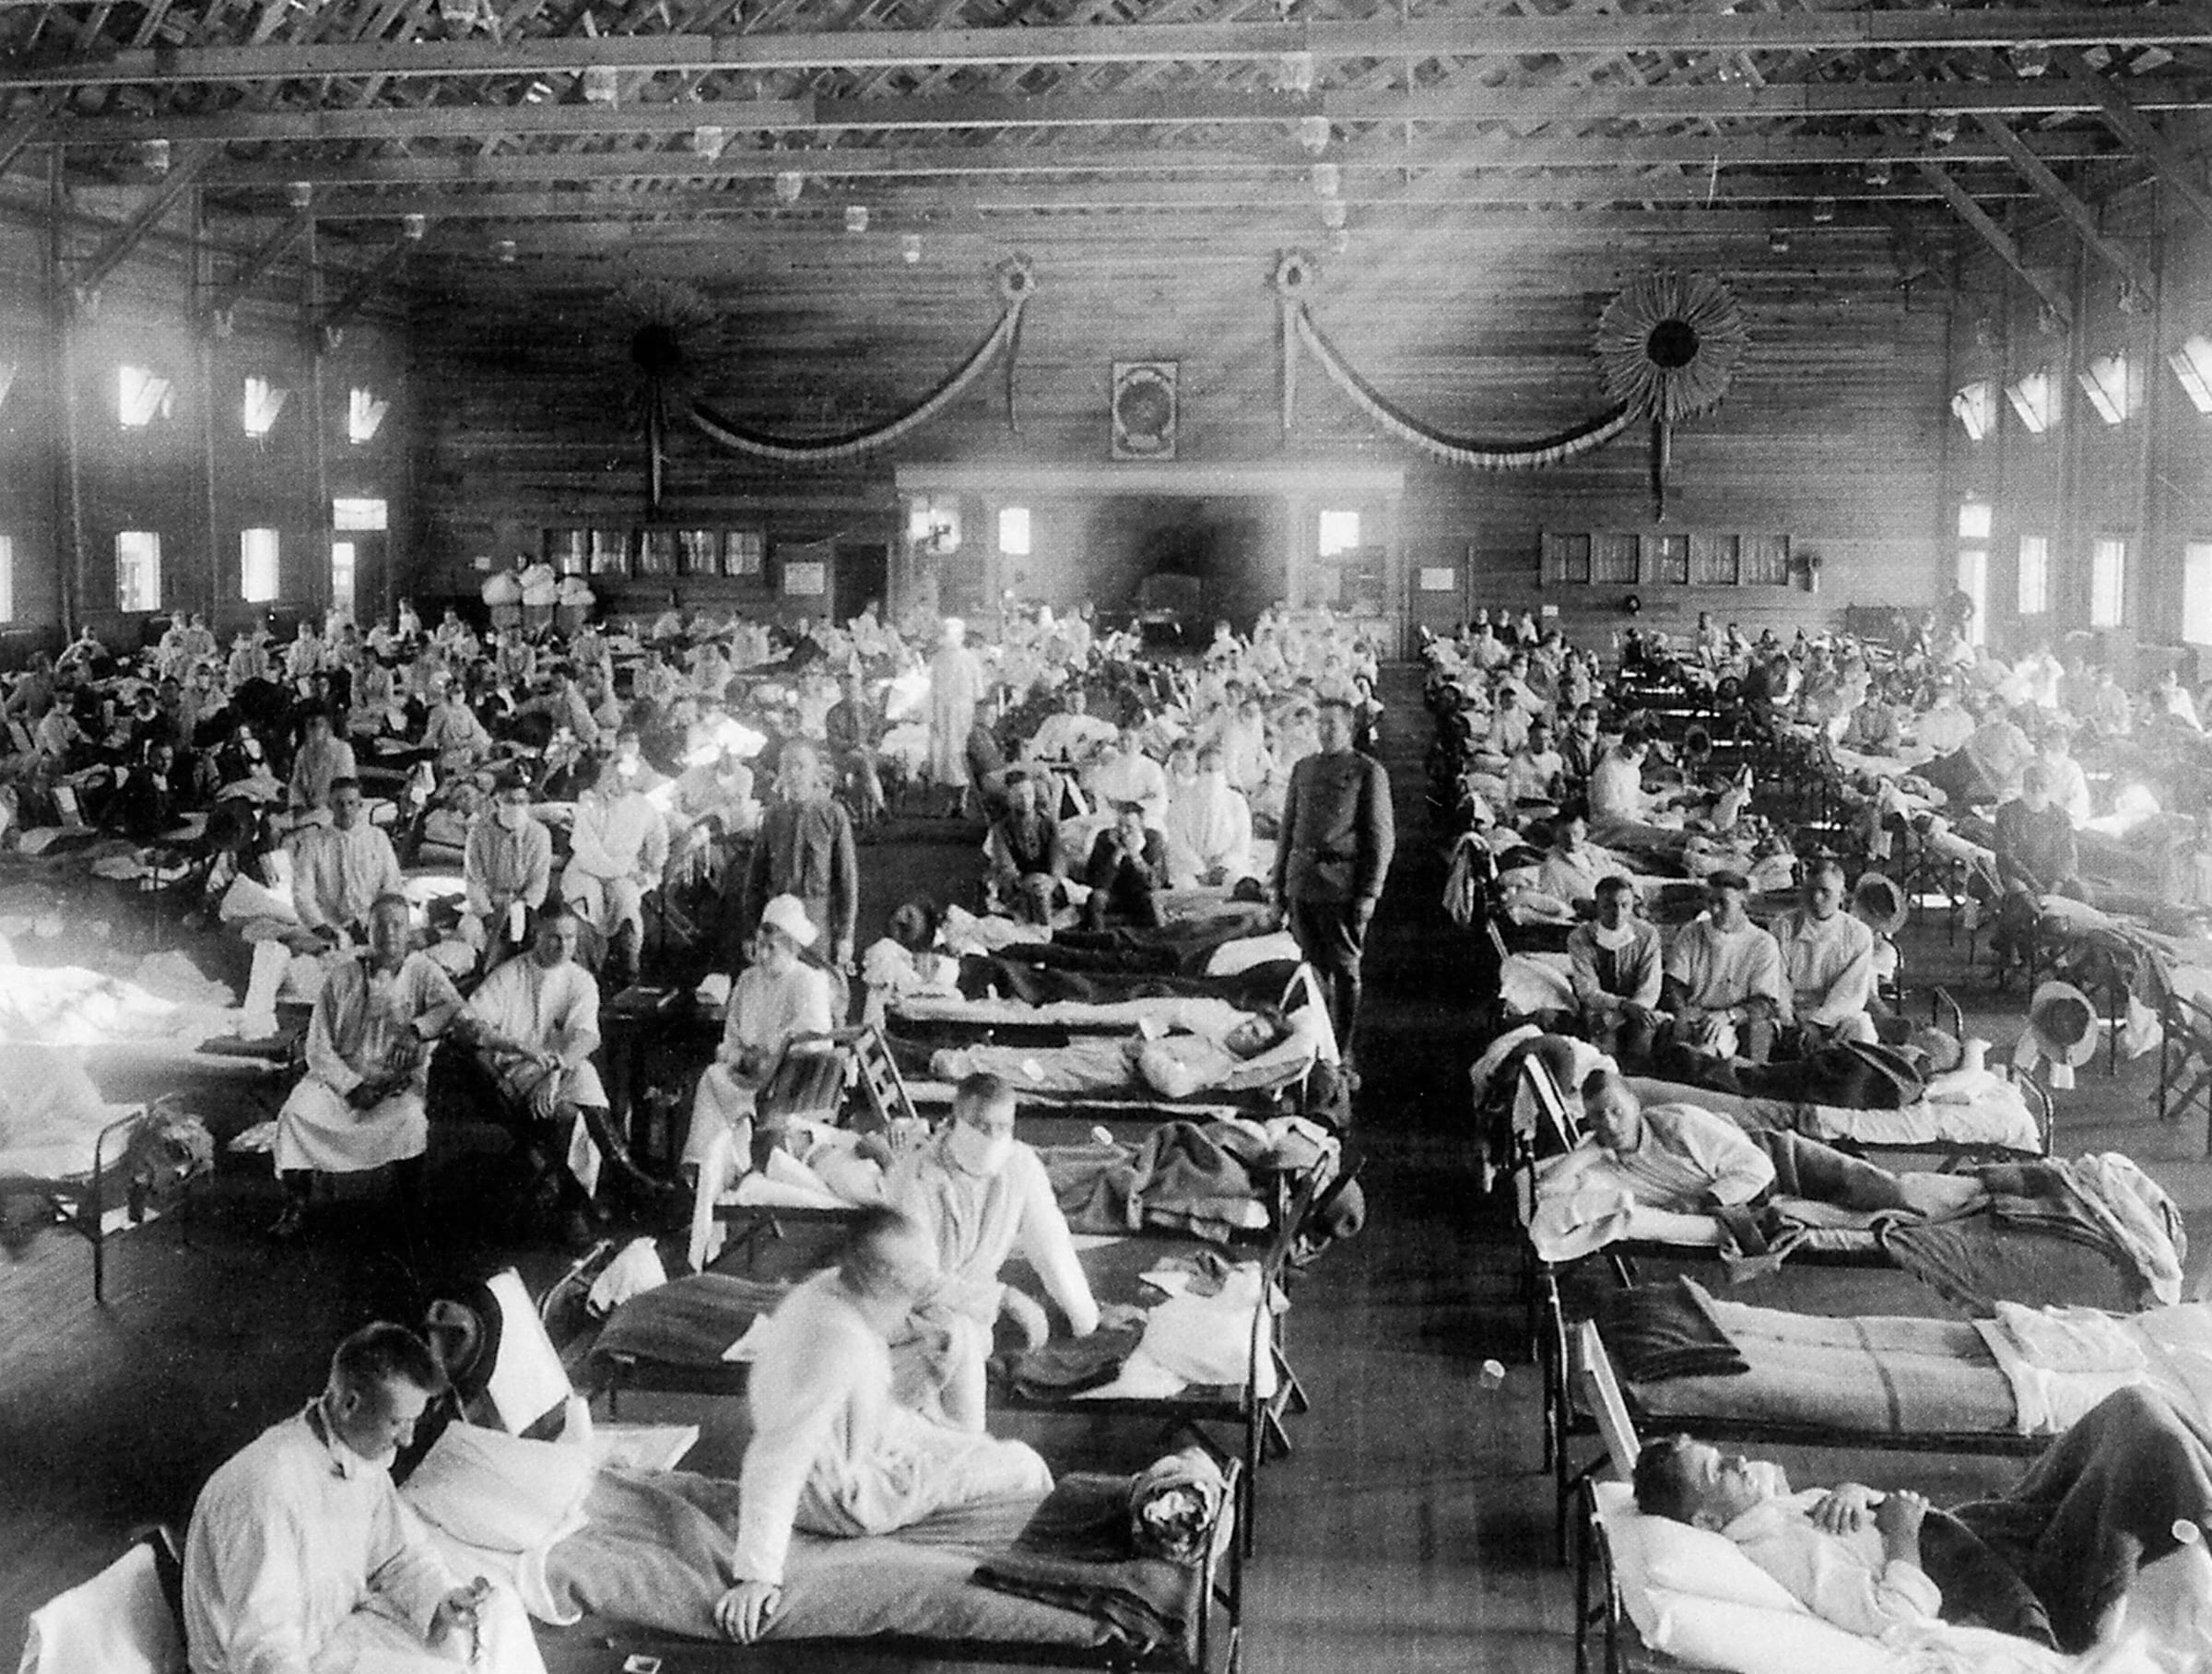 Remembering a pandemic 100 years ago